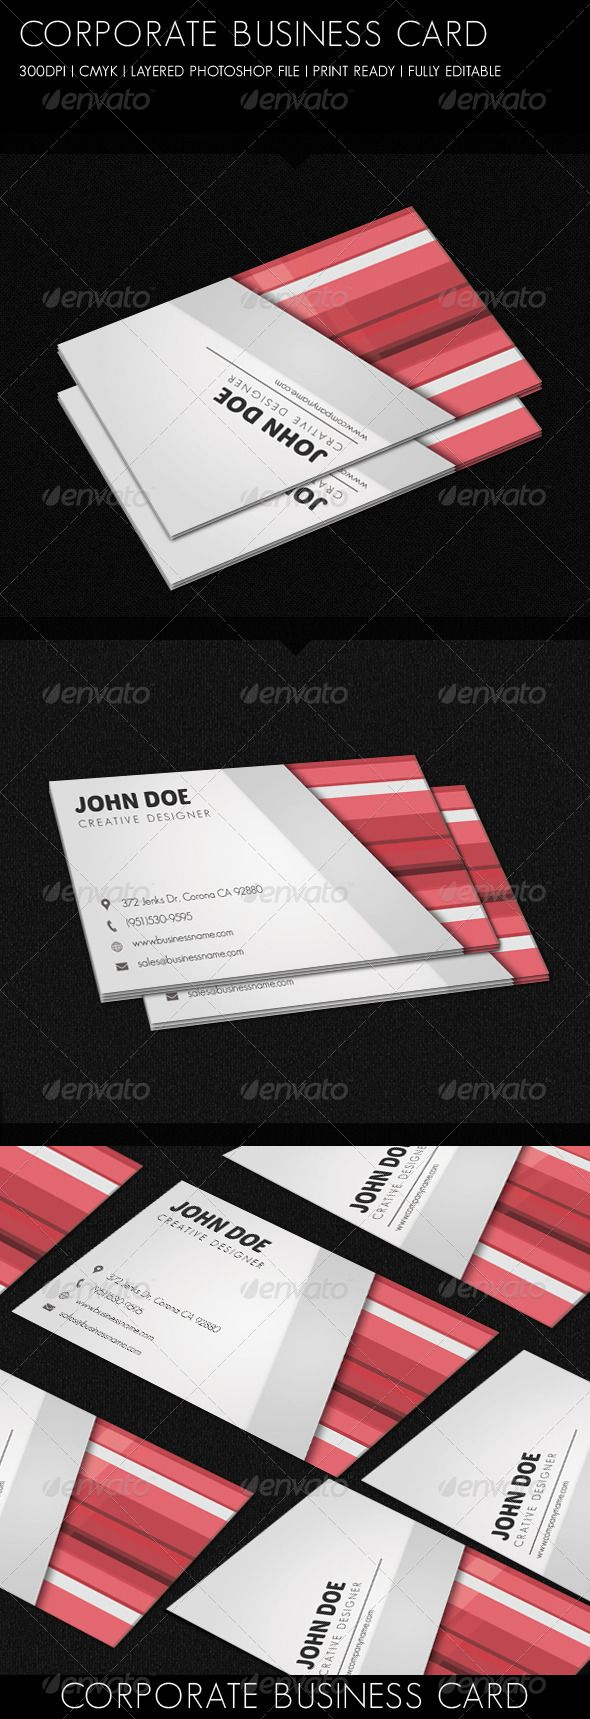 Corporate business card pinterest corporate business business corporate business card corporate company download httpsgraphicriveritemcorporate business card6262585refpxcr reheart Choice Image